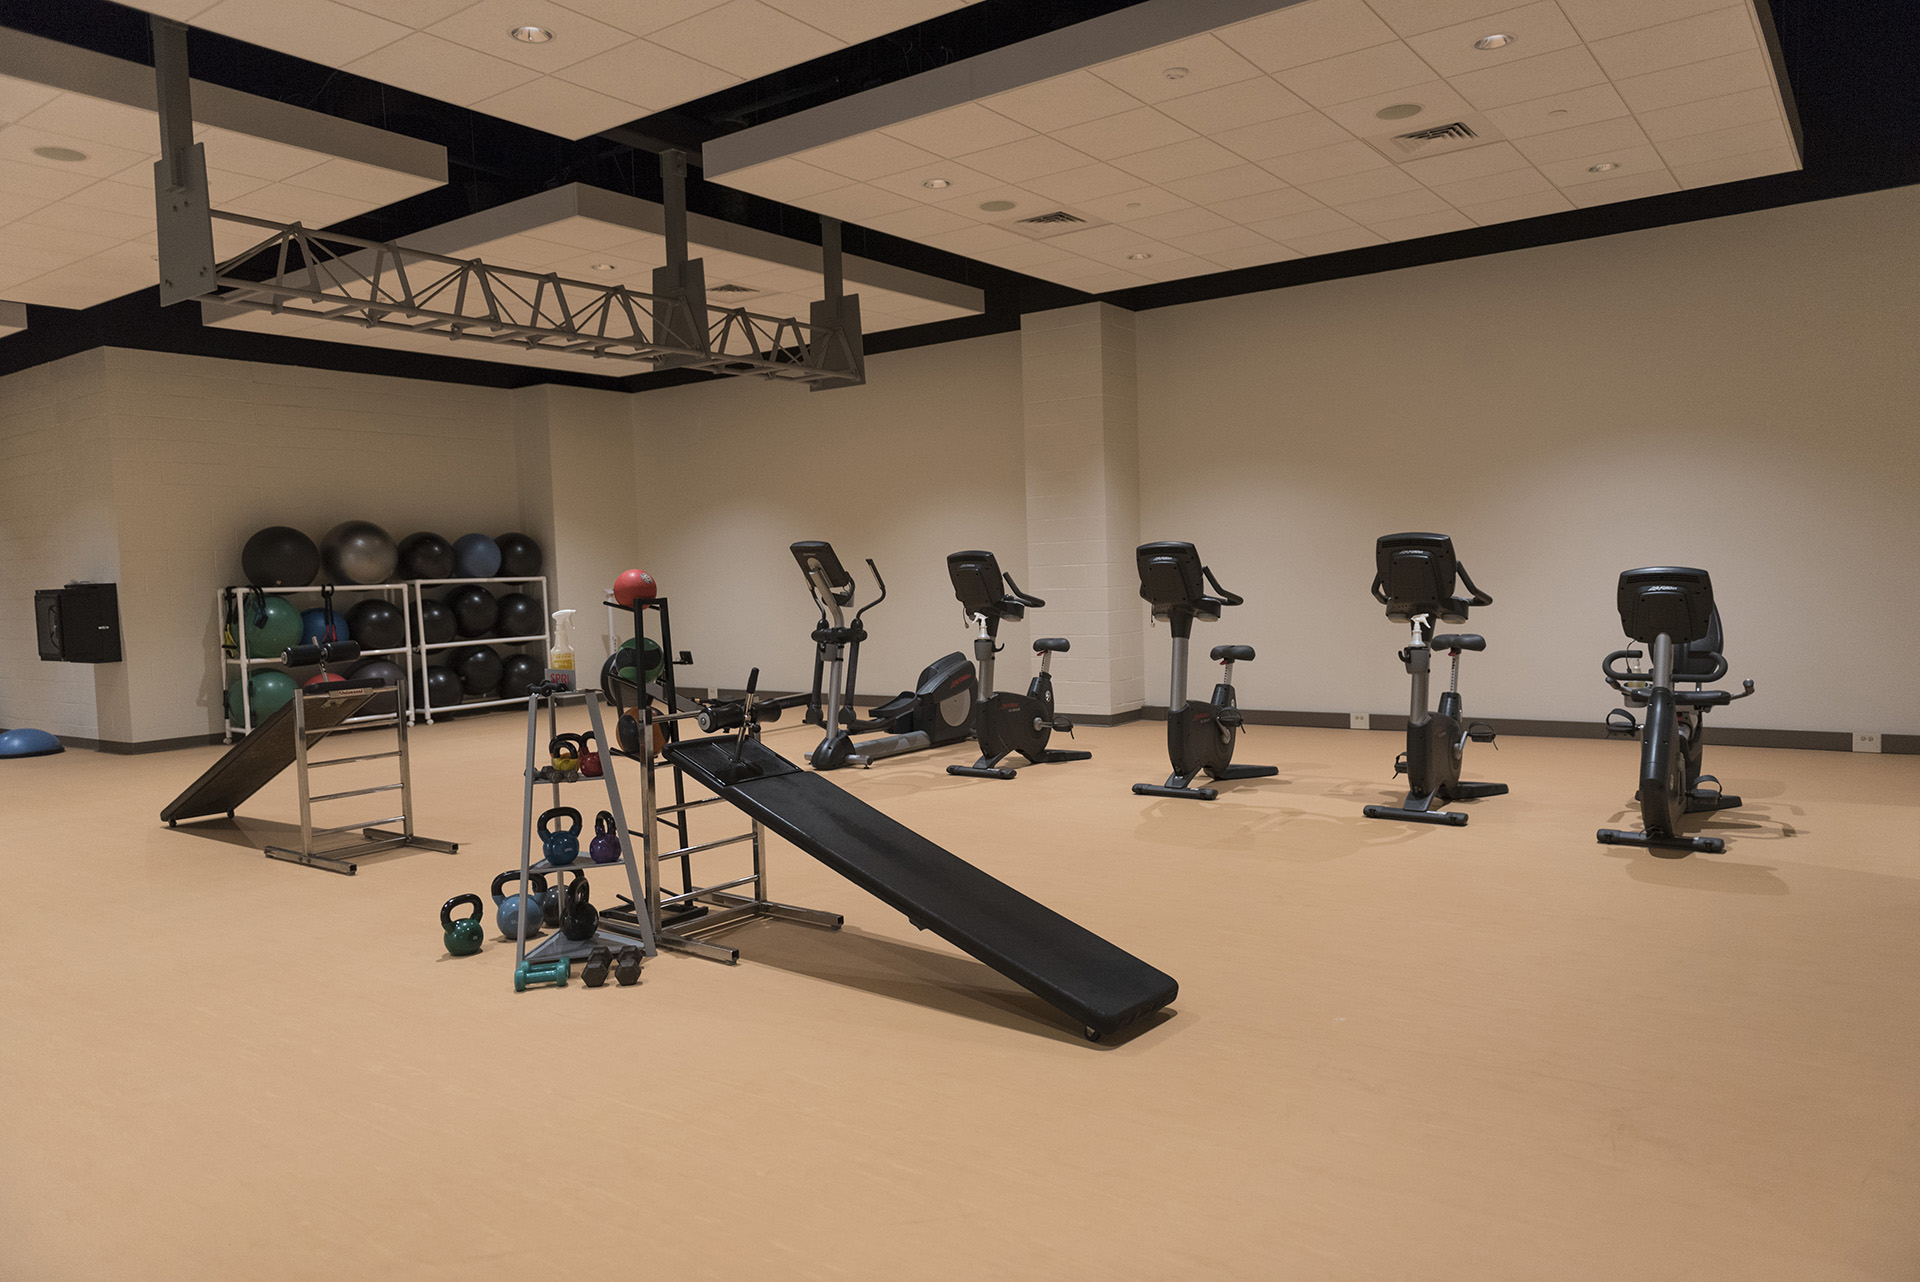 A new spinning room.